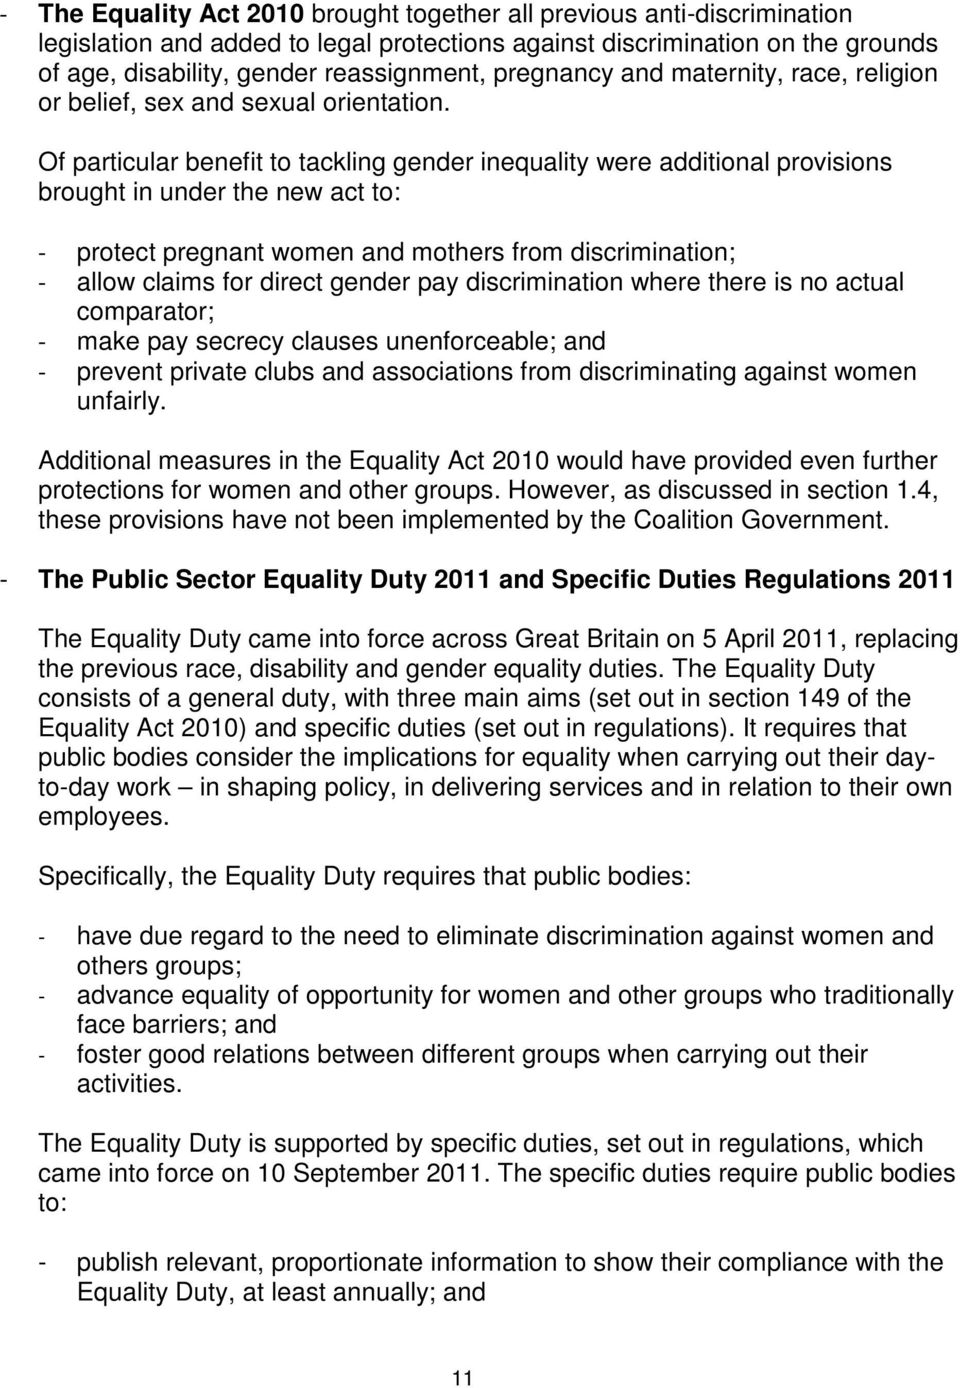 Of particular benefit to tackling gender inequality were additional provisions brought in under the new act to: - protect pregnant women and mothers from discrimination; - allow claims for direct